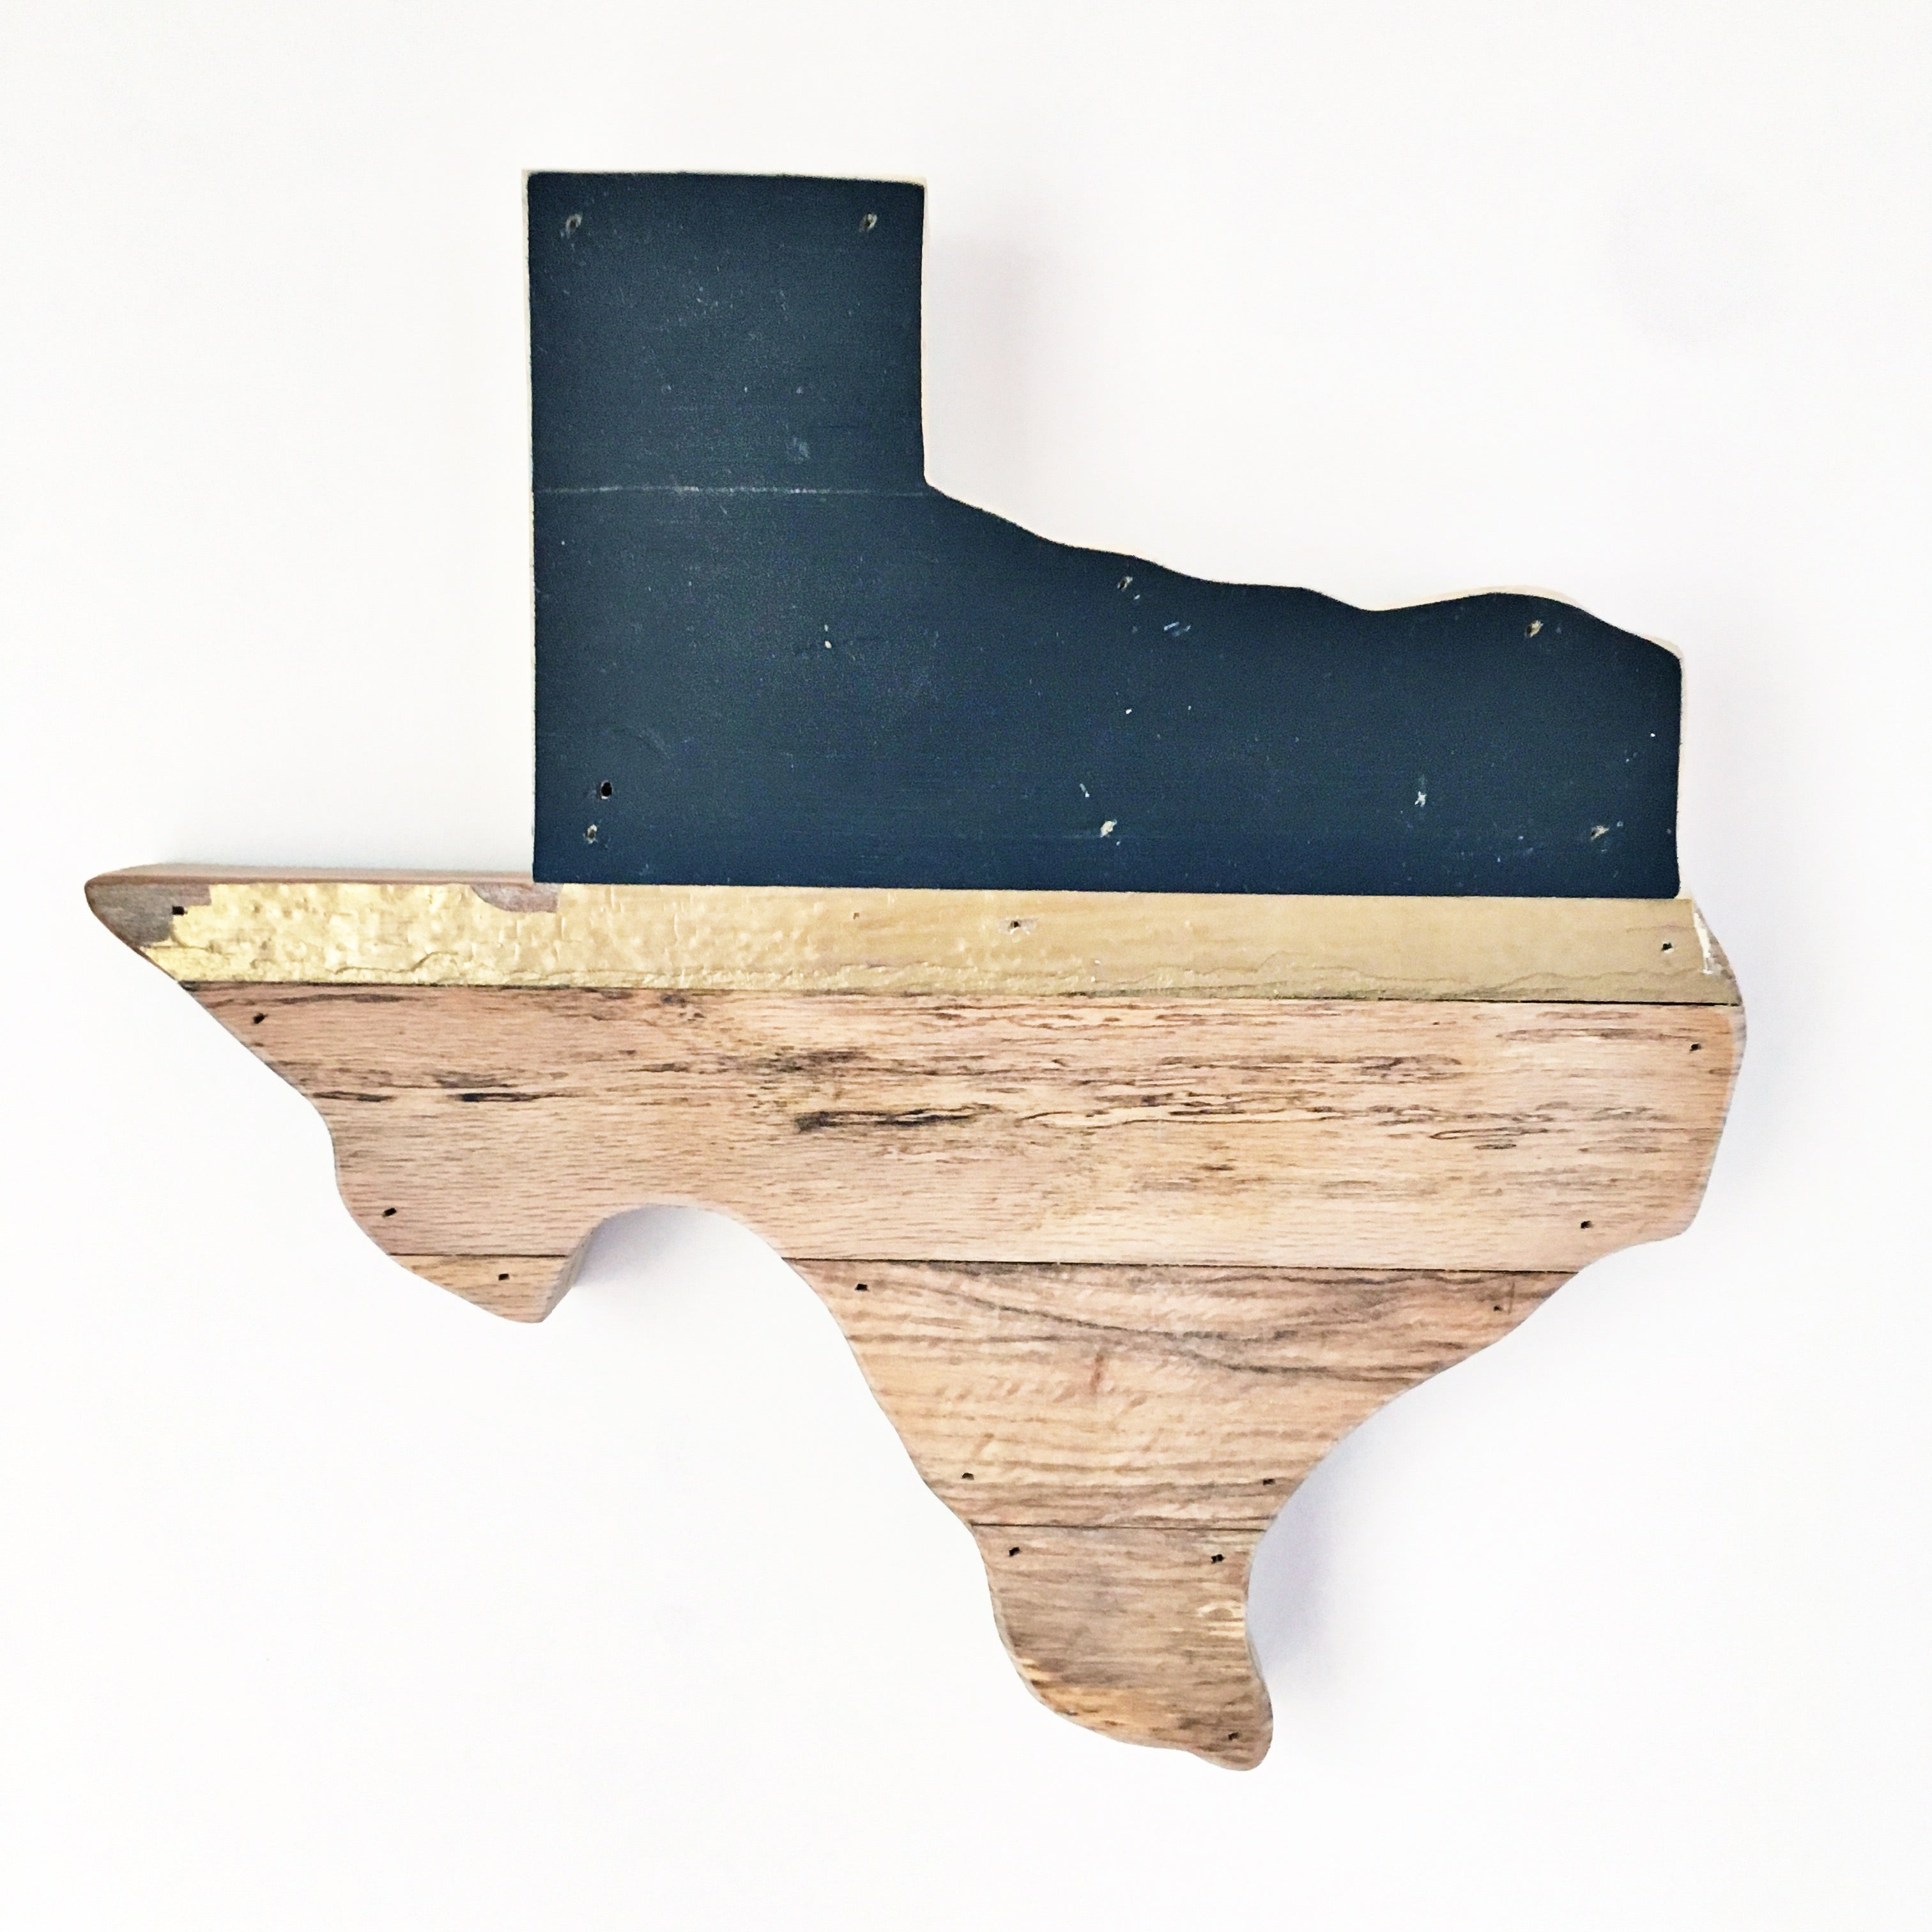 "CUSTOM PLAINS TEXAS - 15"" (One-of-a-Kind)"